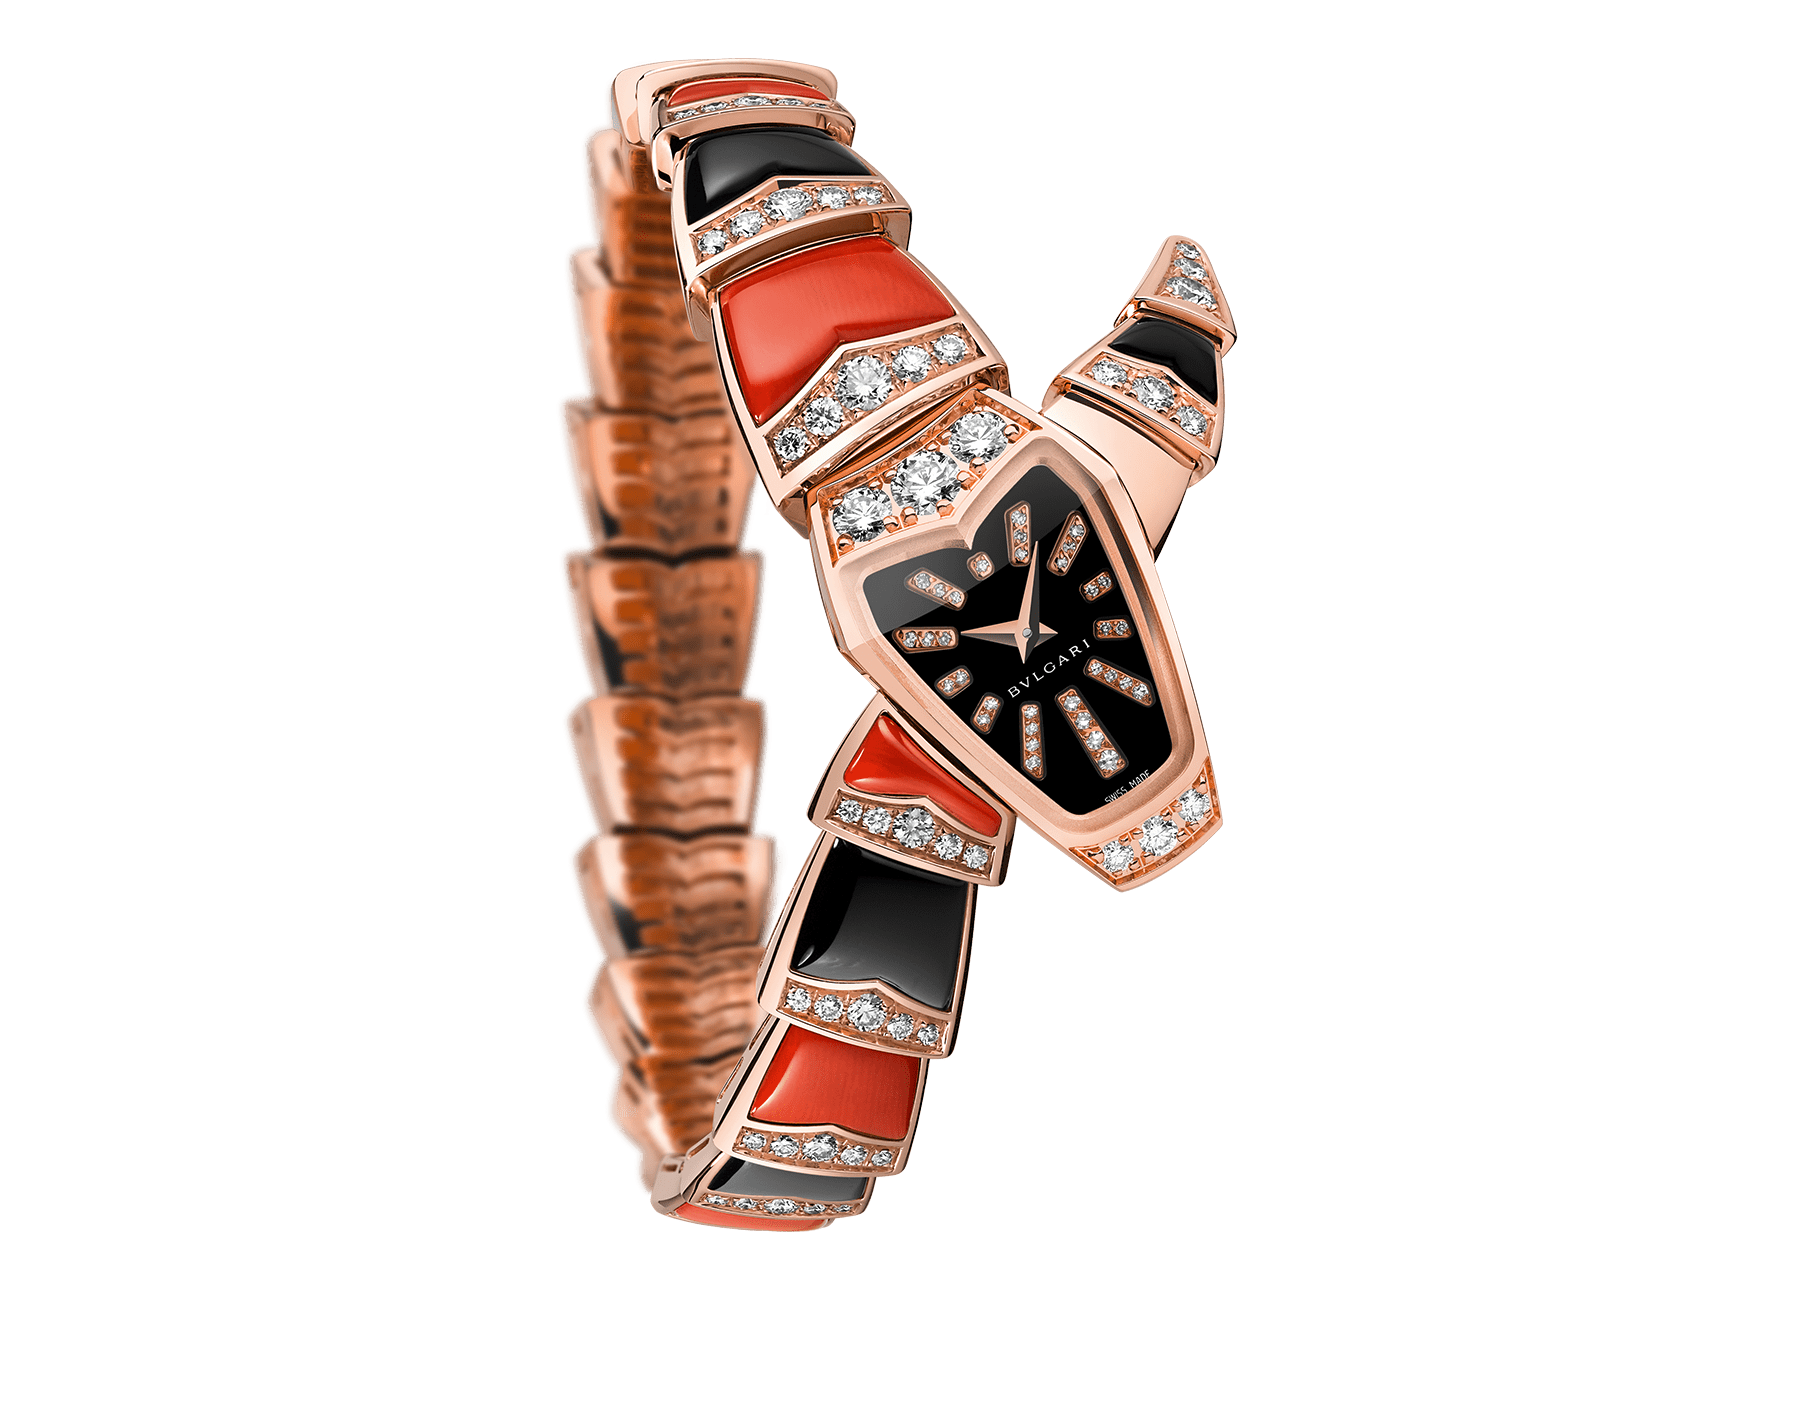 Serpenti Jewellery Watch with 18 kt rose gold case set with brilliant cut diamonds, black sapphire dial, diamond indexes, 18 kt rose gold single spiral bracelet set with brilliant cut diamonds, coral and onyx elements. 102491 image 1